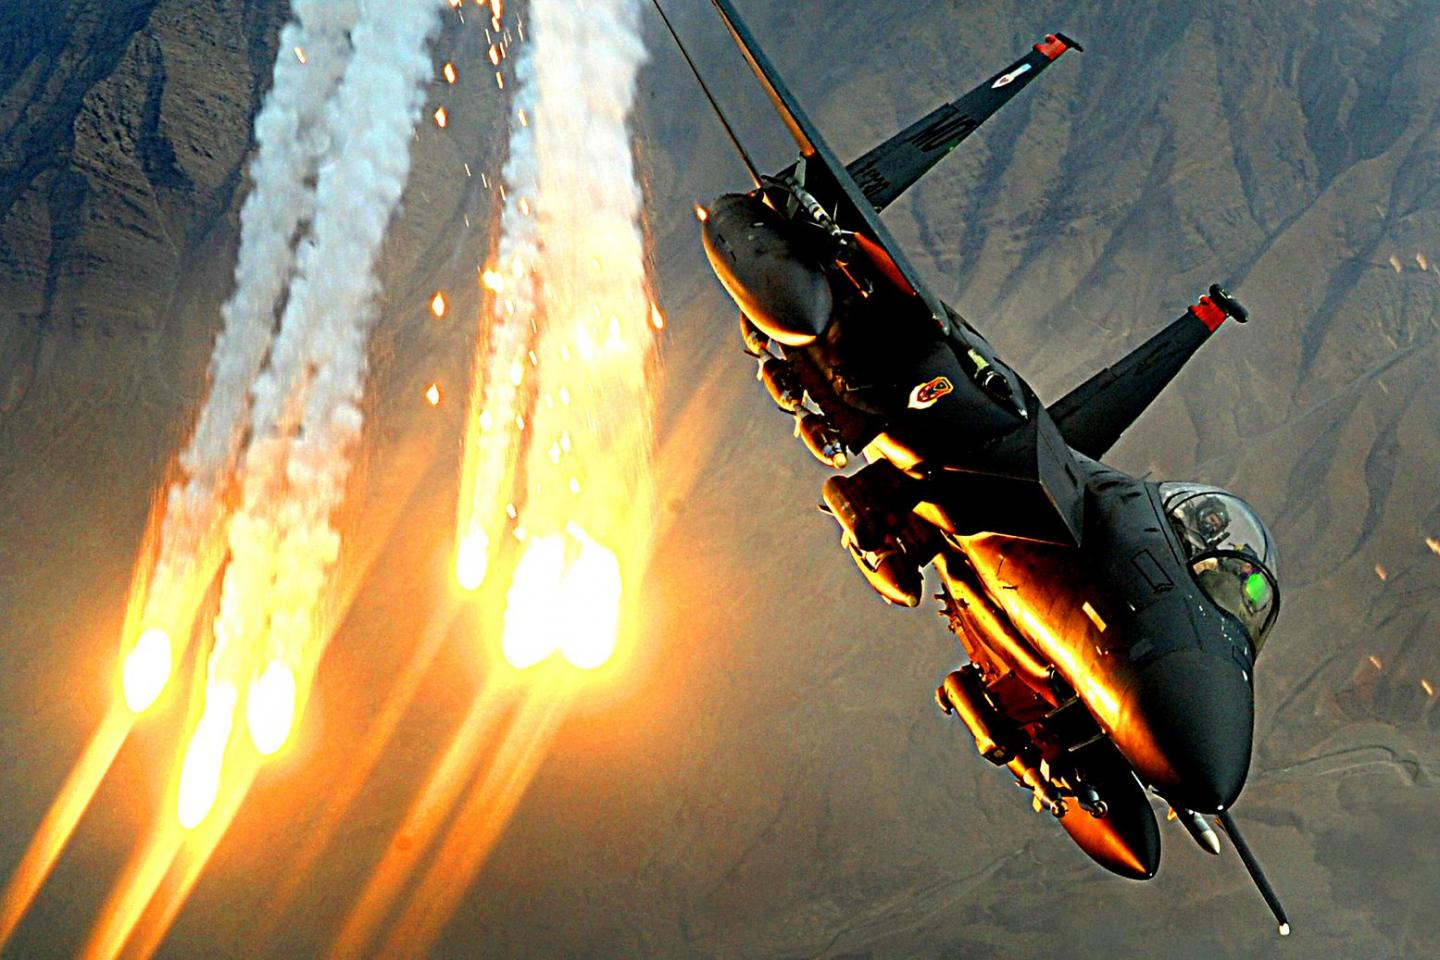 30 Plus Years After the F-15Es First Flight and the Strike Eagle Is Still Unstoppable